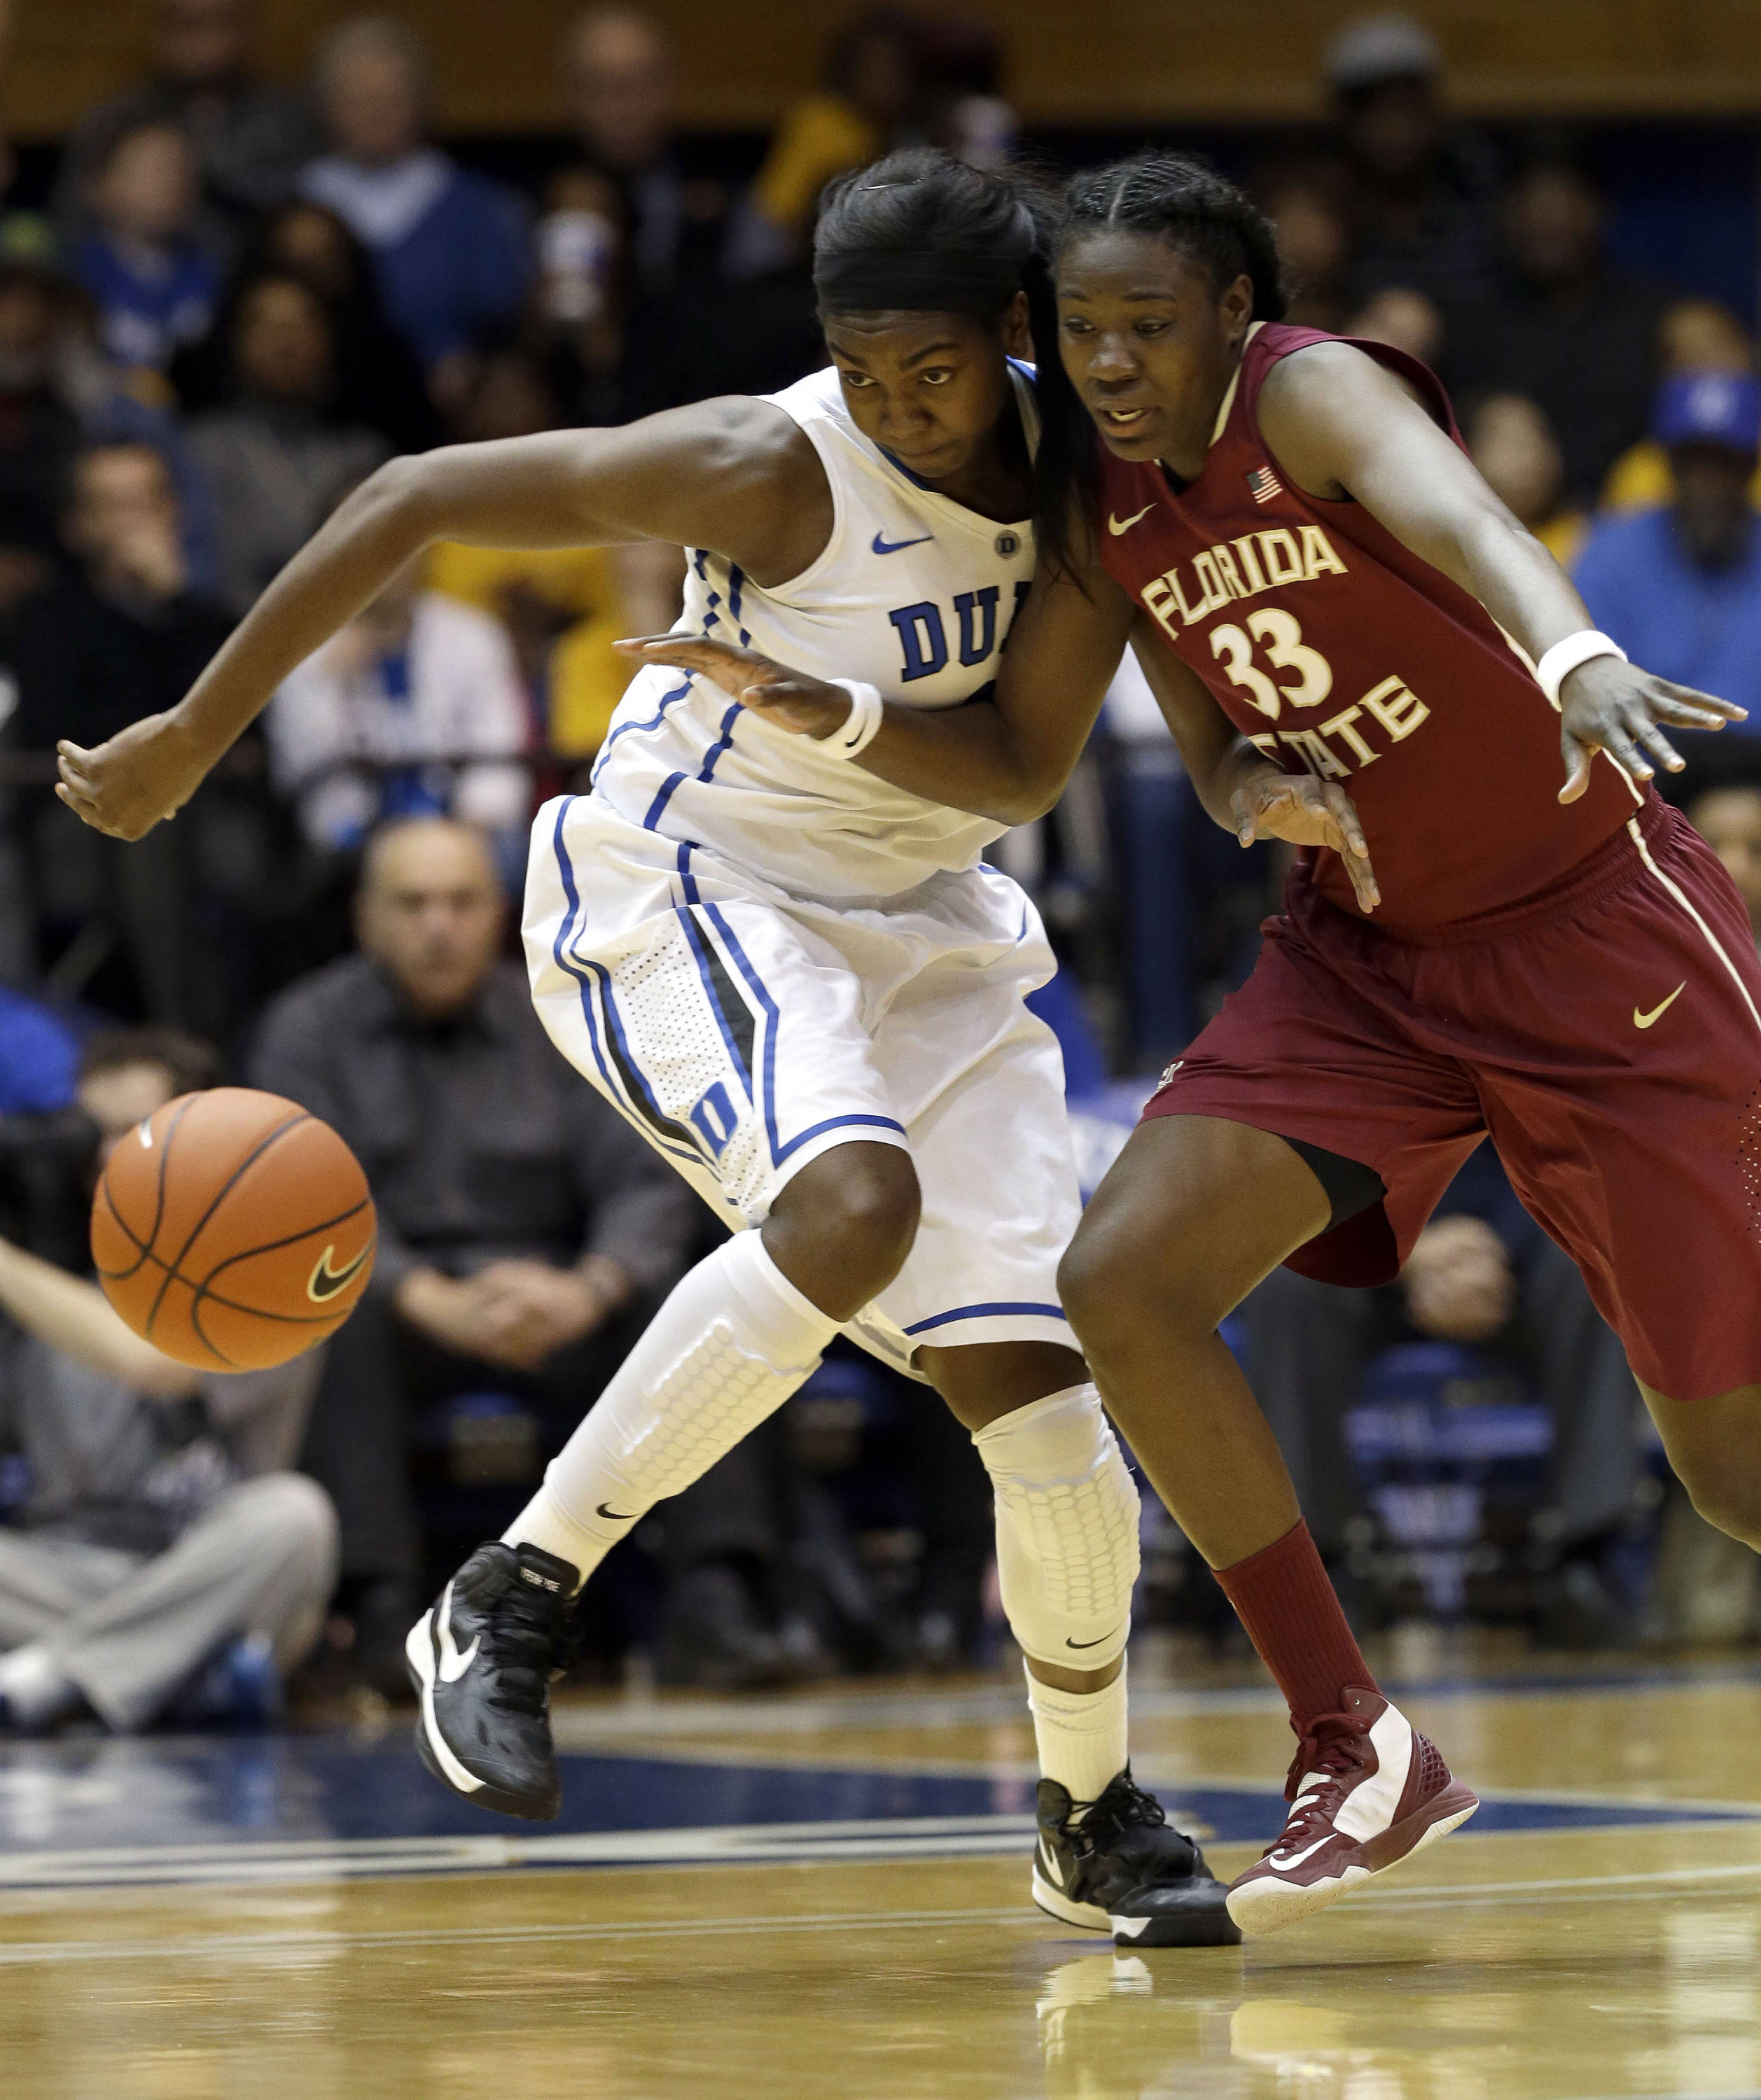 Duke's Elizabeth Williams, left, and Florida State's Natasha Howard (33) chase the loose ball during the first half. (AP Photo/Gerry Broome)